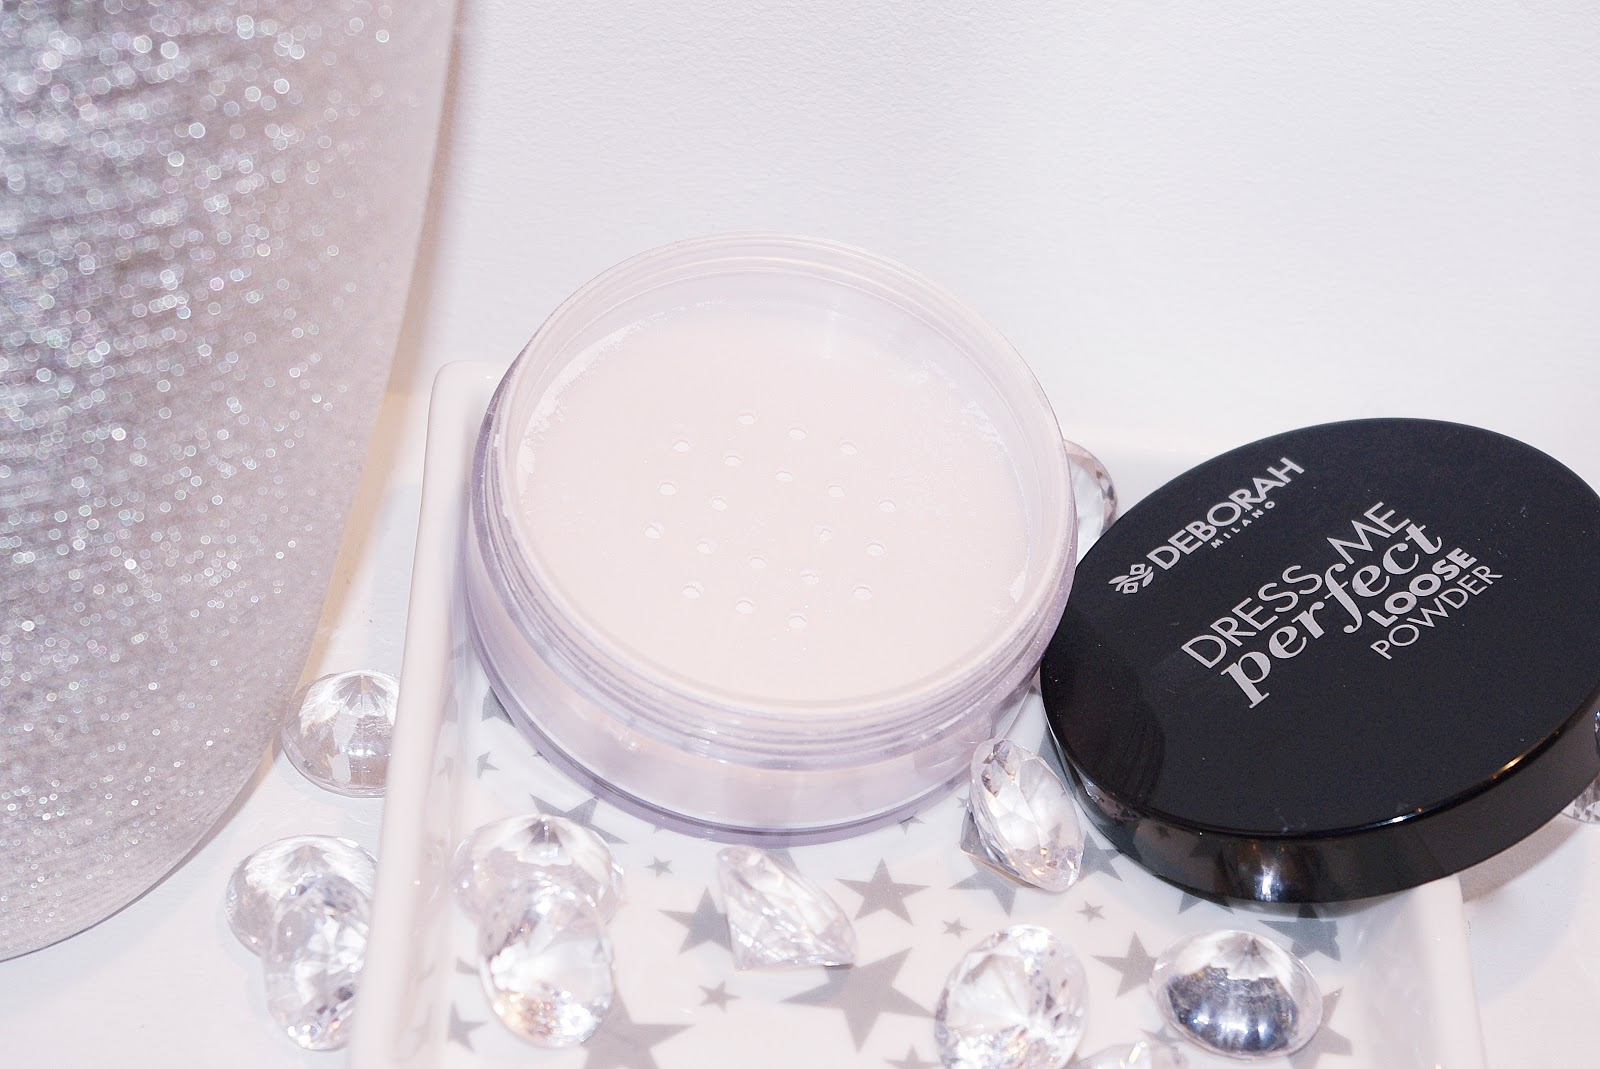 Deborah Dress Me Perfect Loose Powder